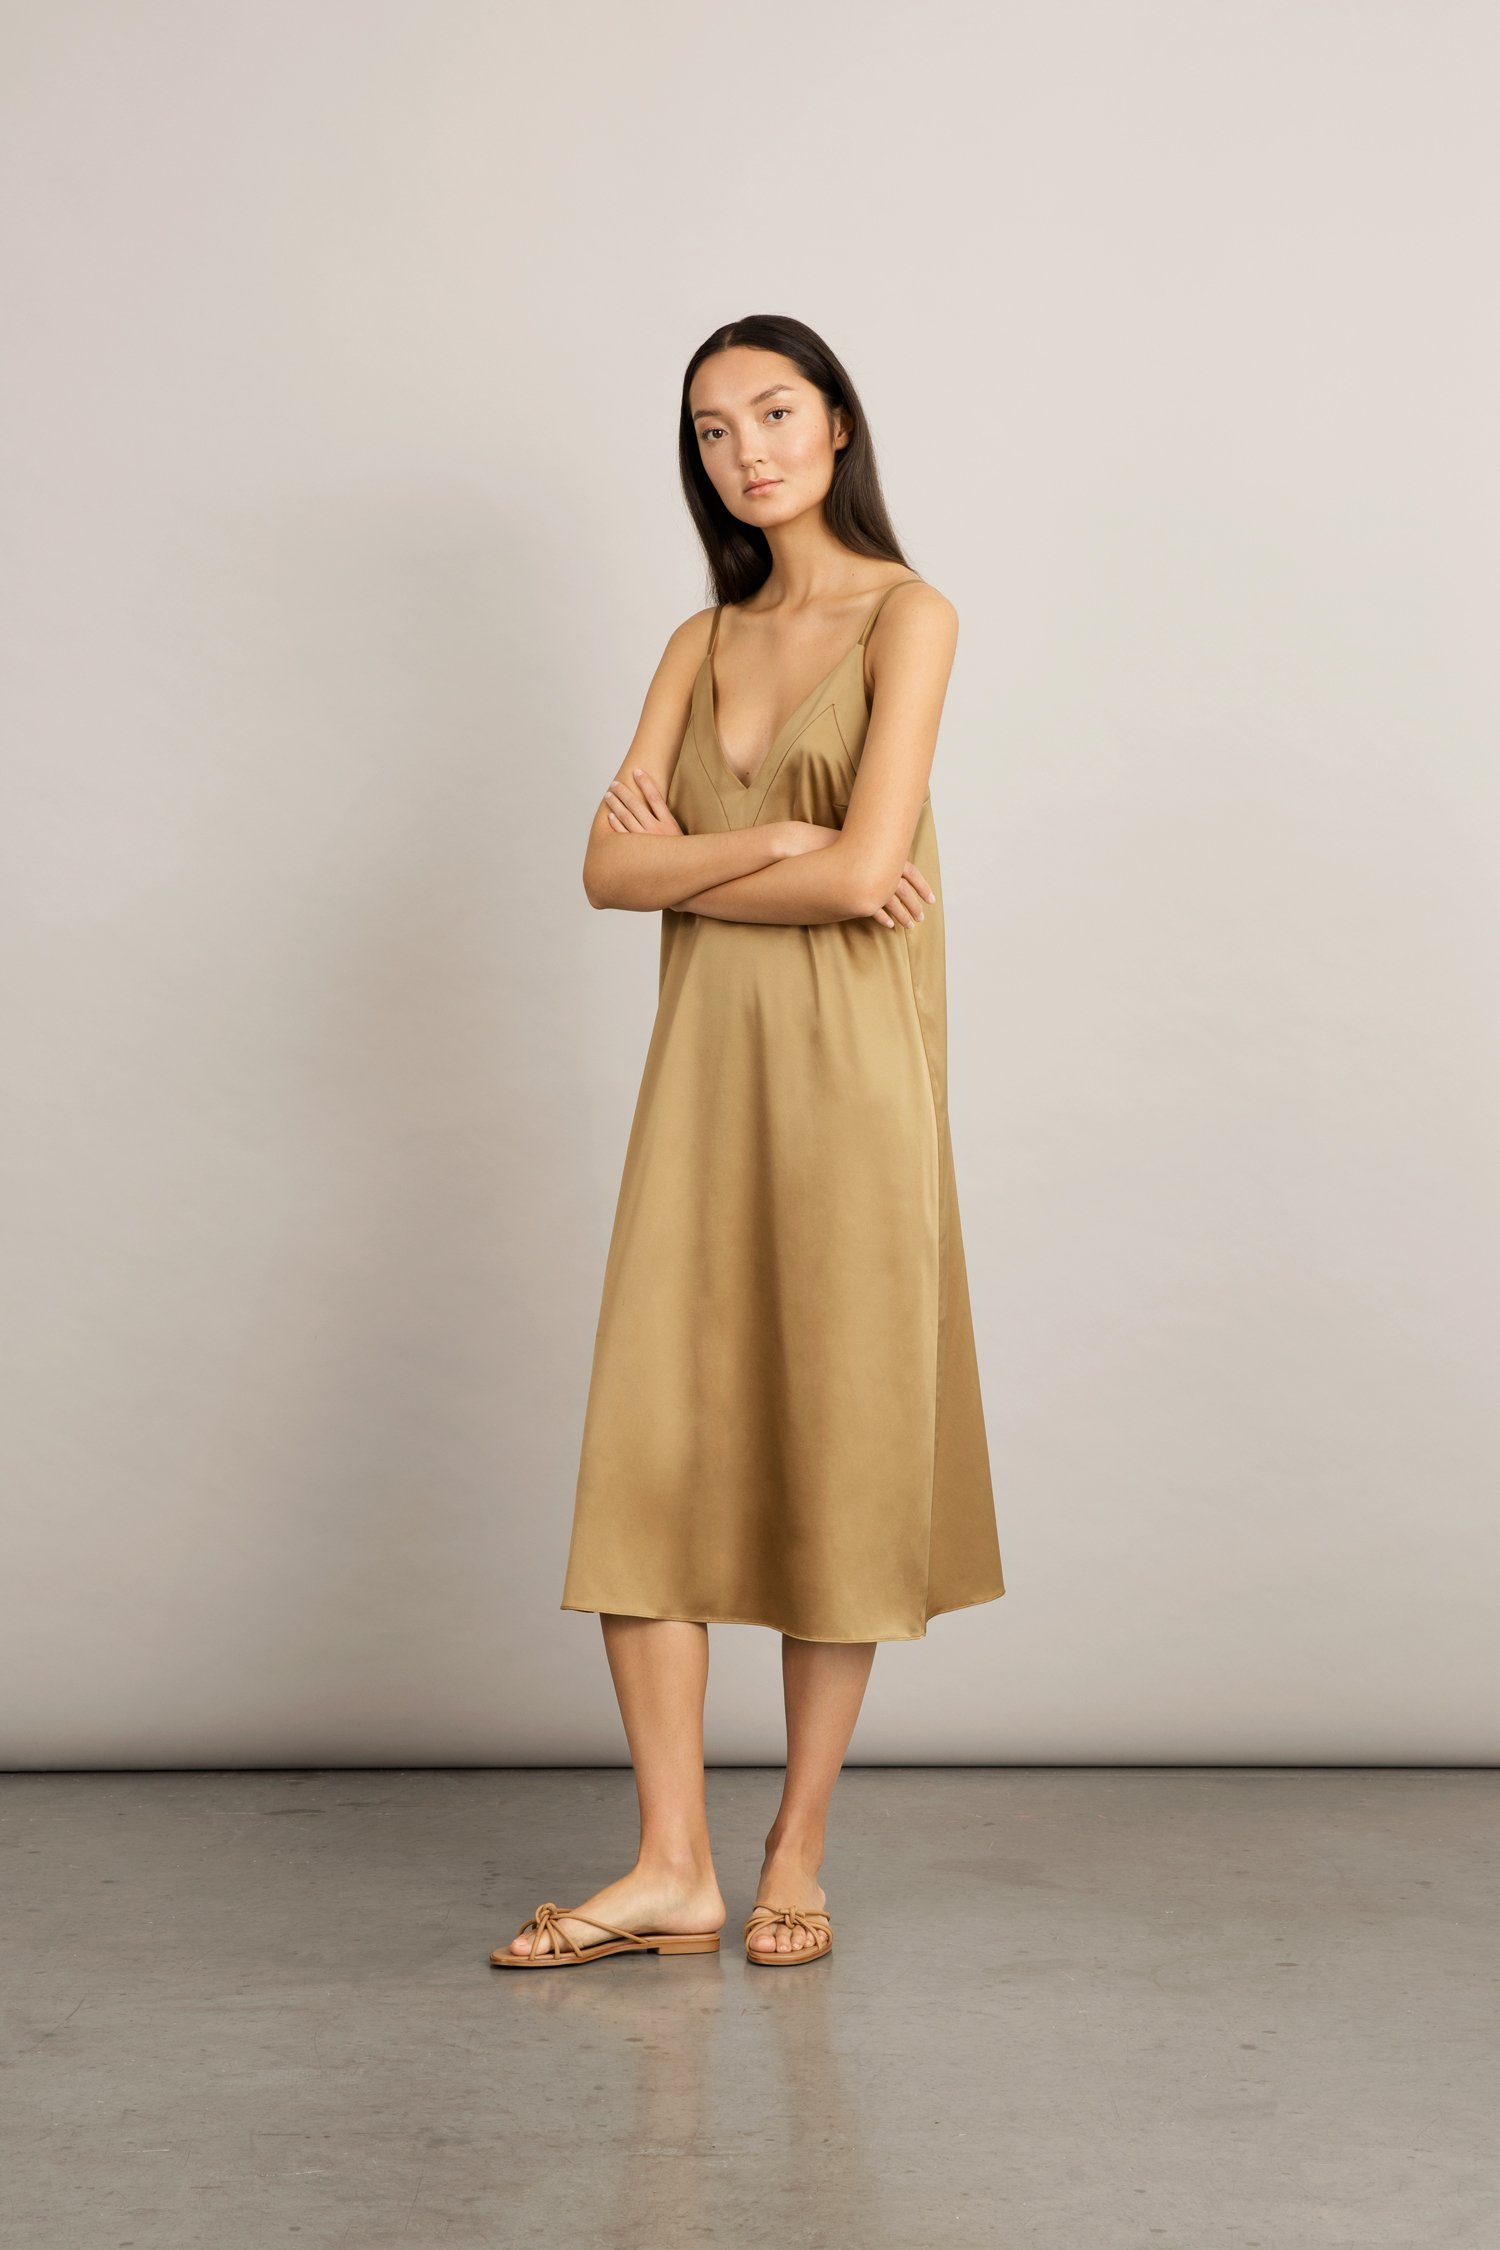 MODA DRESS - BRONZE Dress Stylein